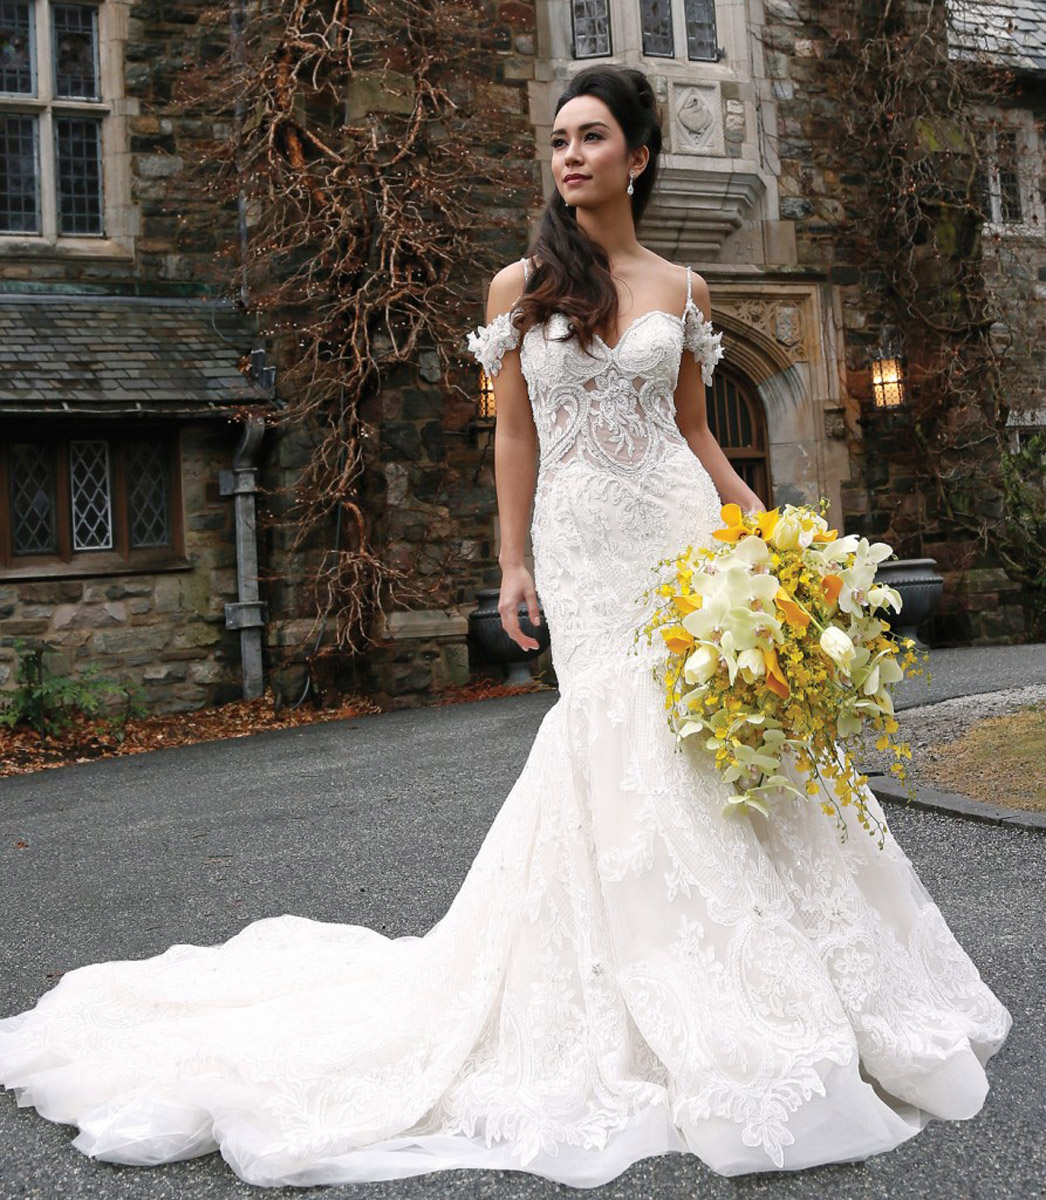 Bride wedding dress in front of skylands manner